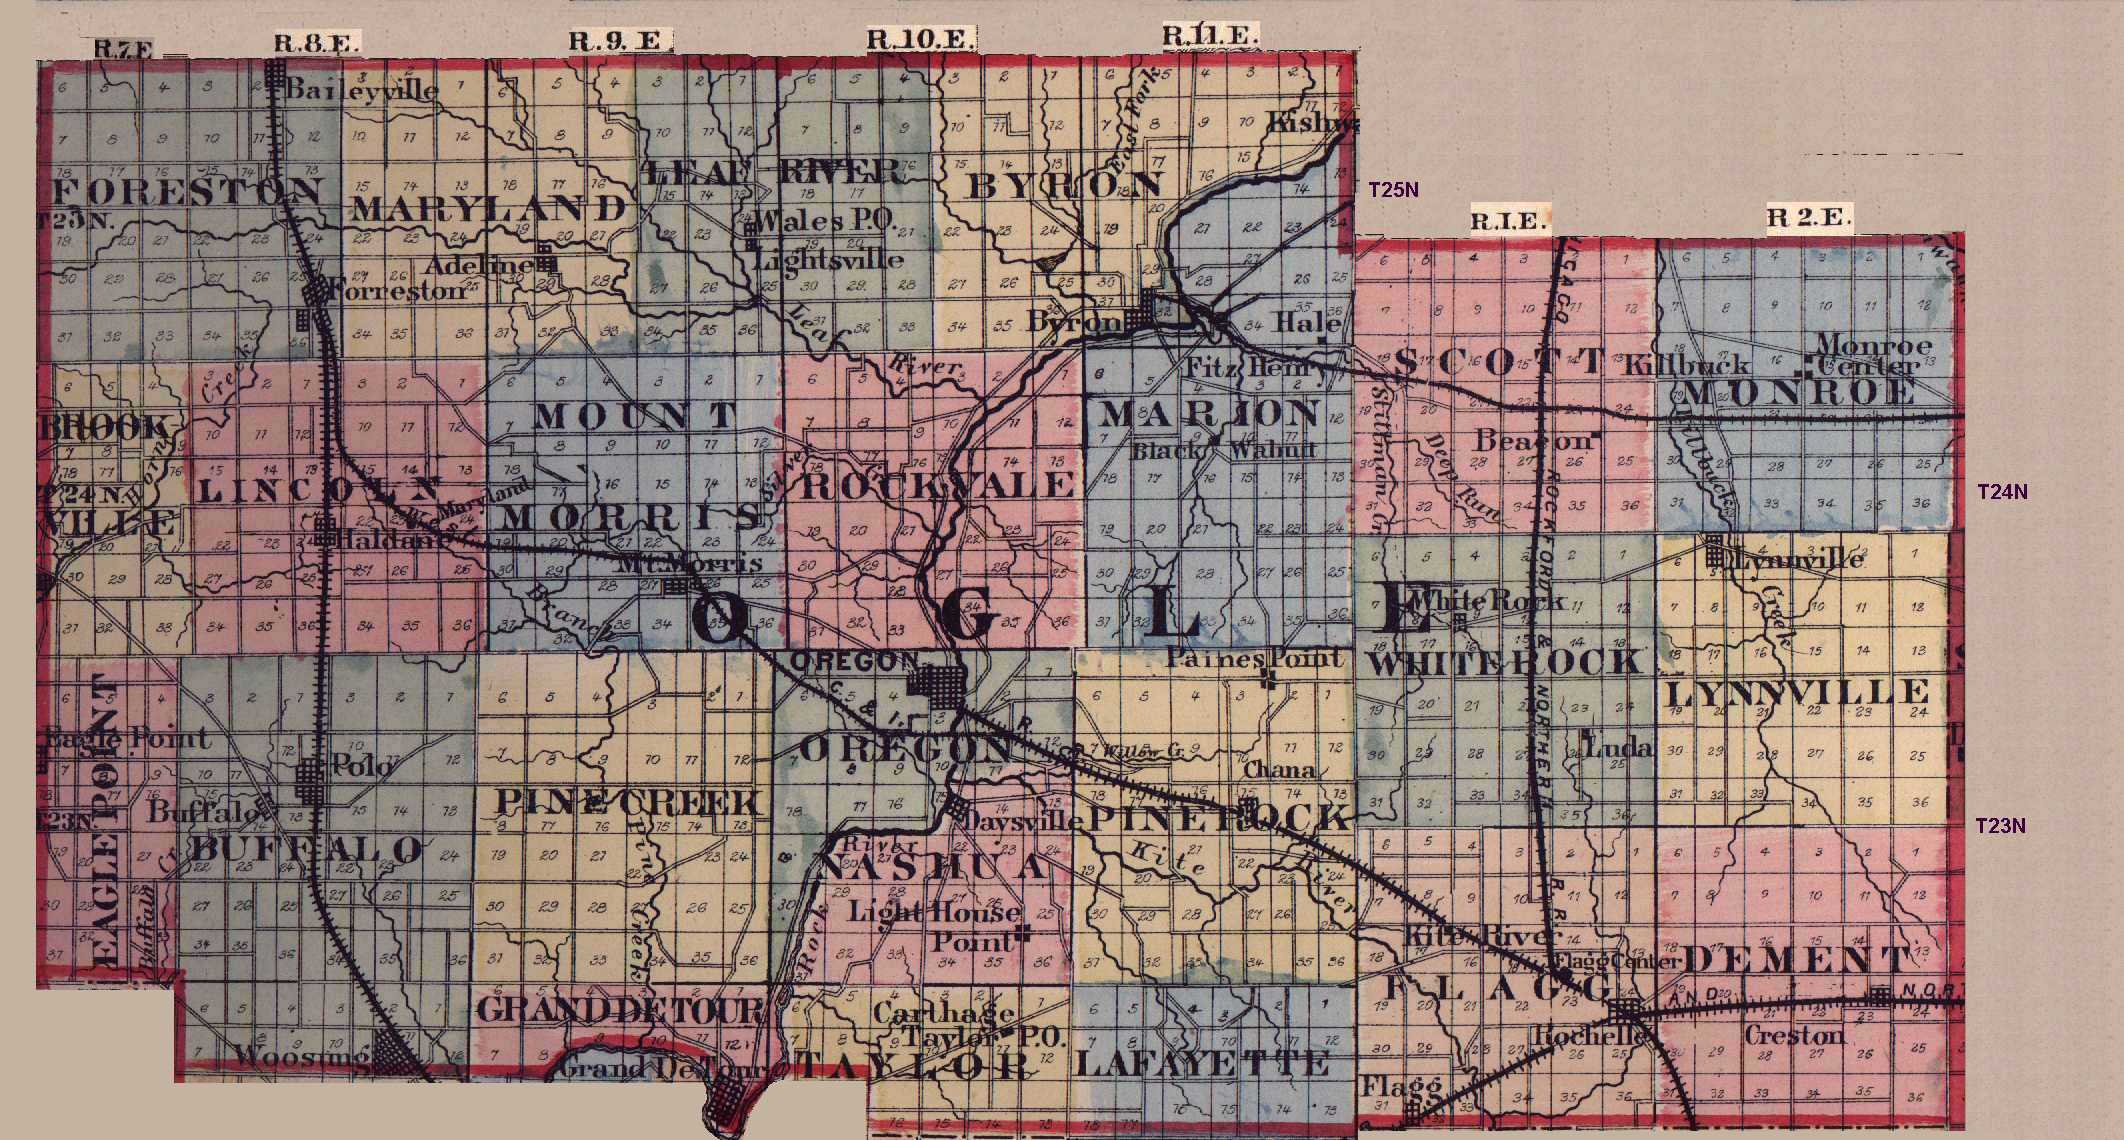 Illinois ogle county oregon - 7 5 Minute Topographic Maps In Ogle County Identifies Cemeteries Atlases Of Winnebago Boone And Ogle Counties